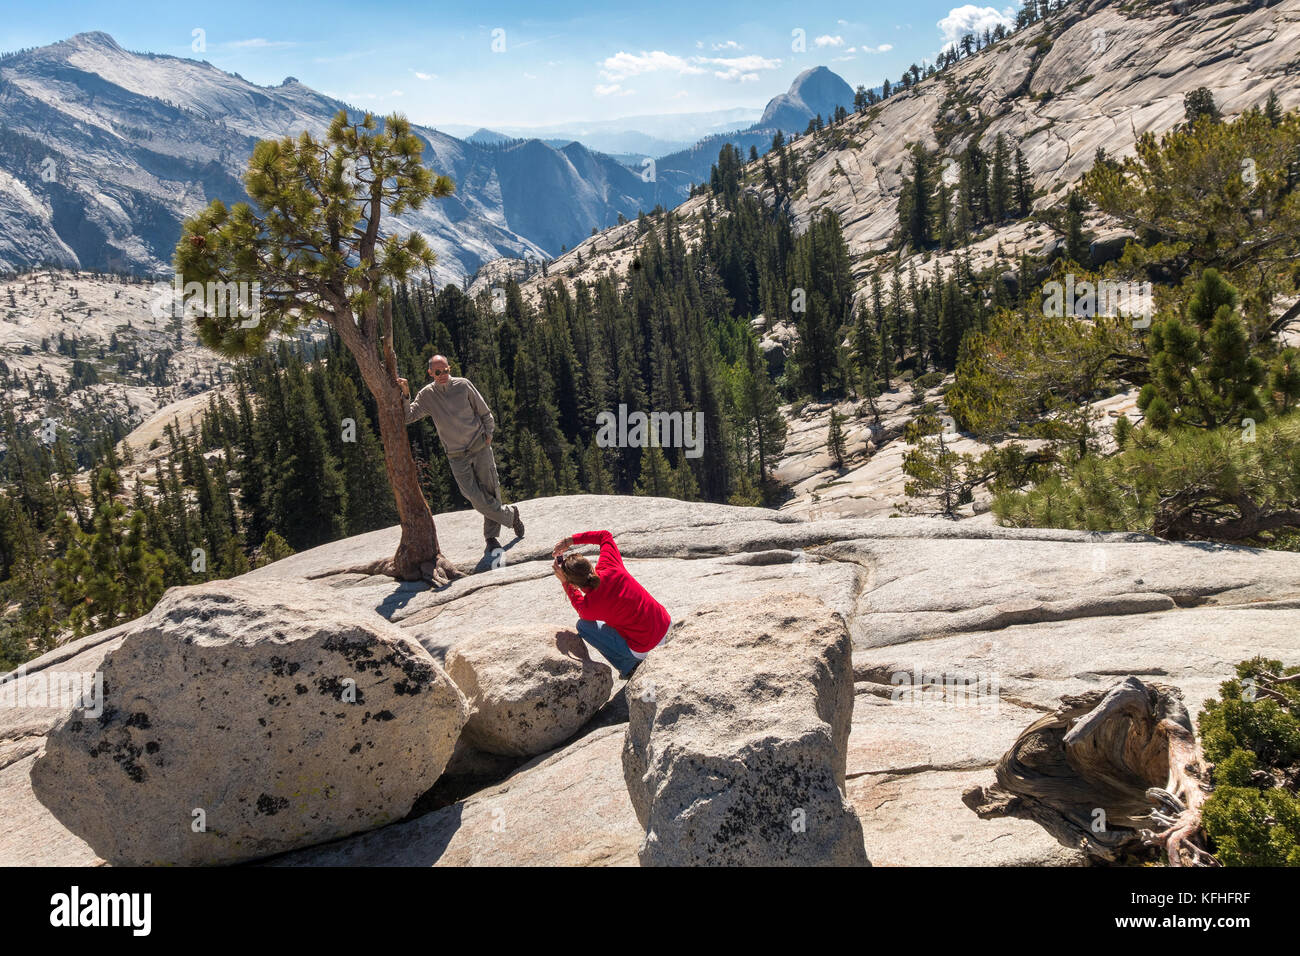 Olmsted Point Yosemite Paar Fotos mit Half Dome in der Ferne im Yosemite National Park Stockbild